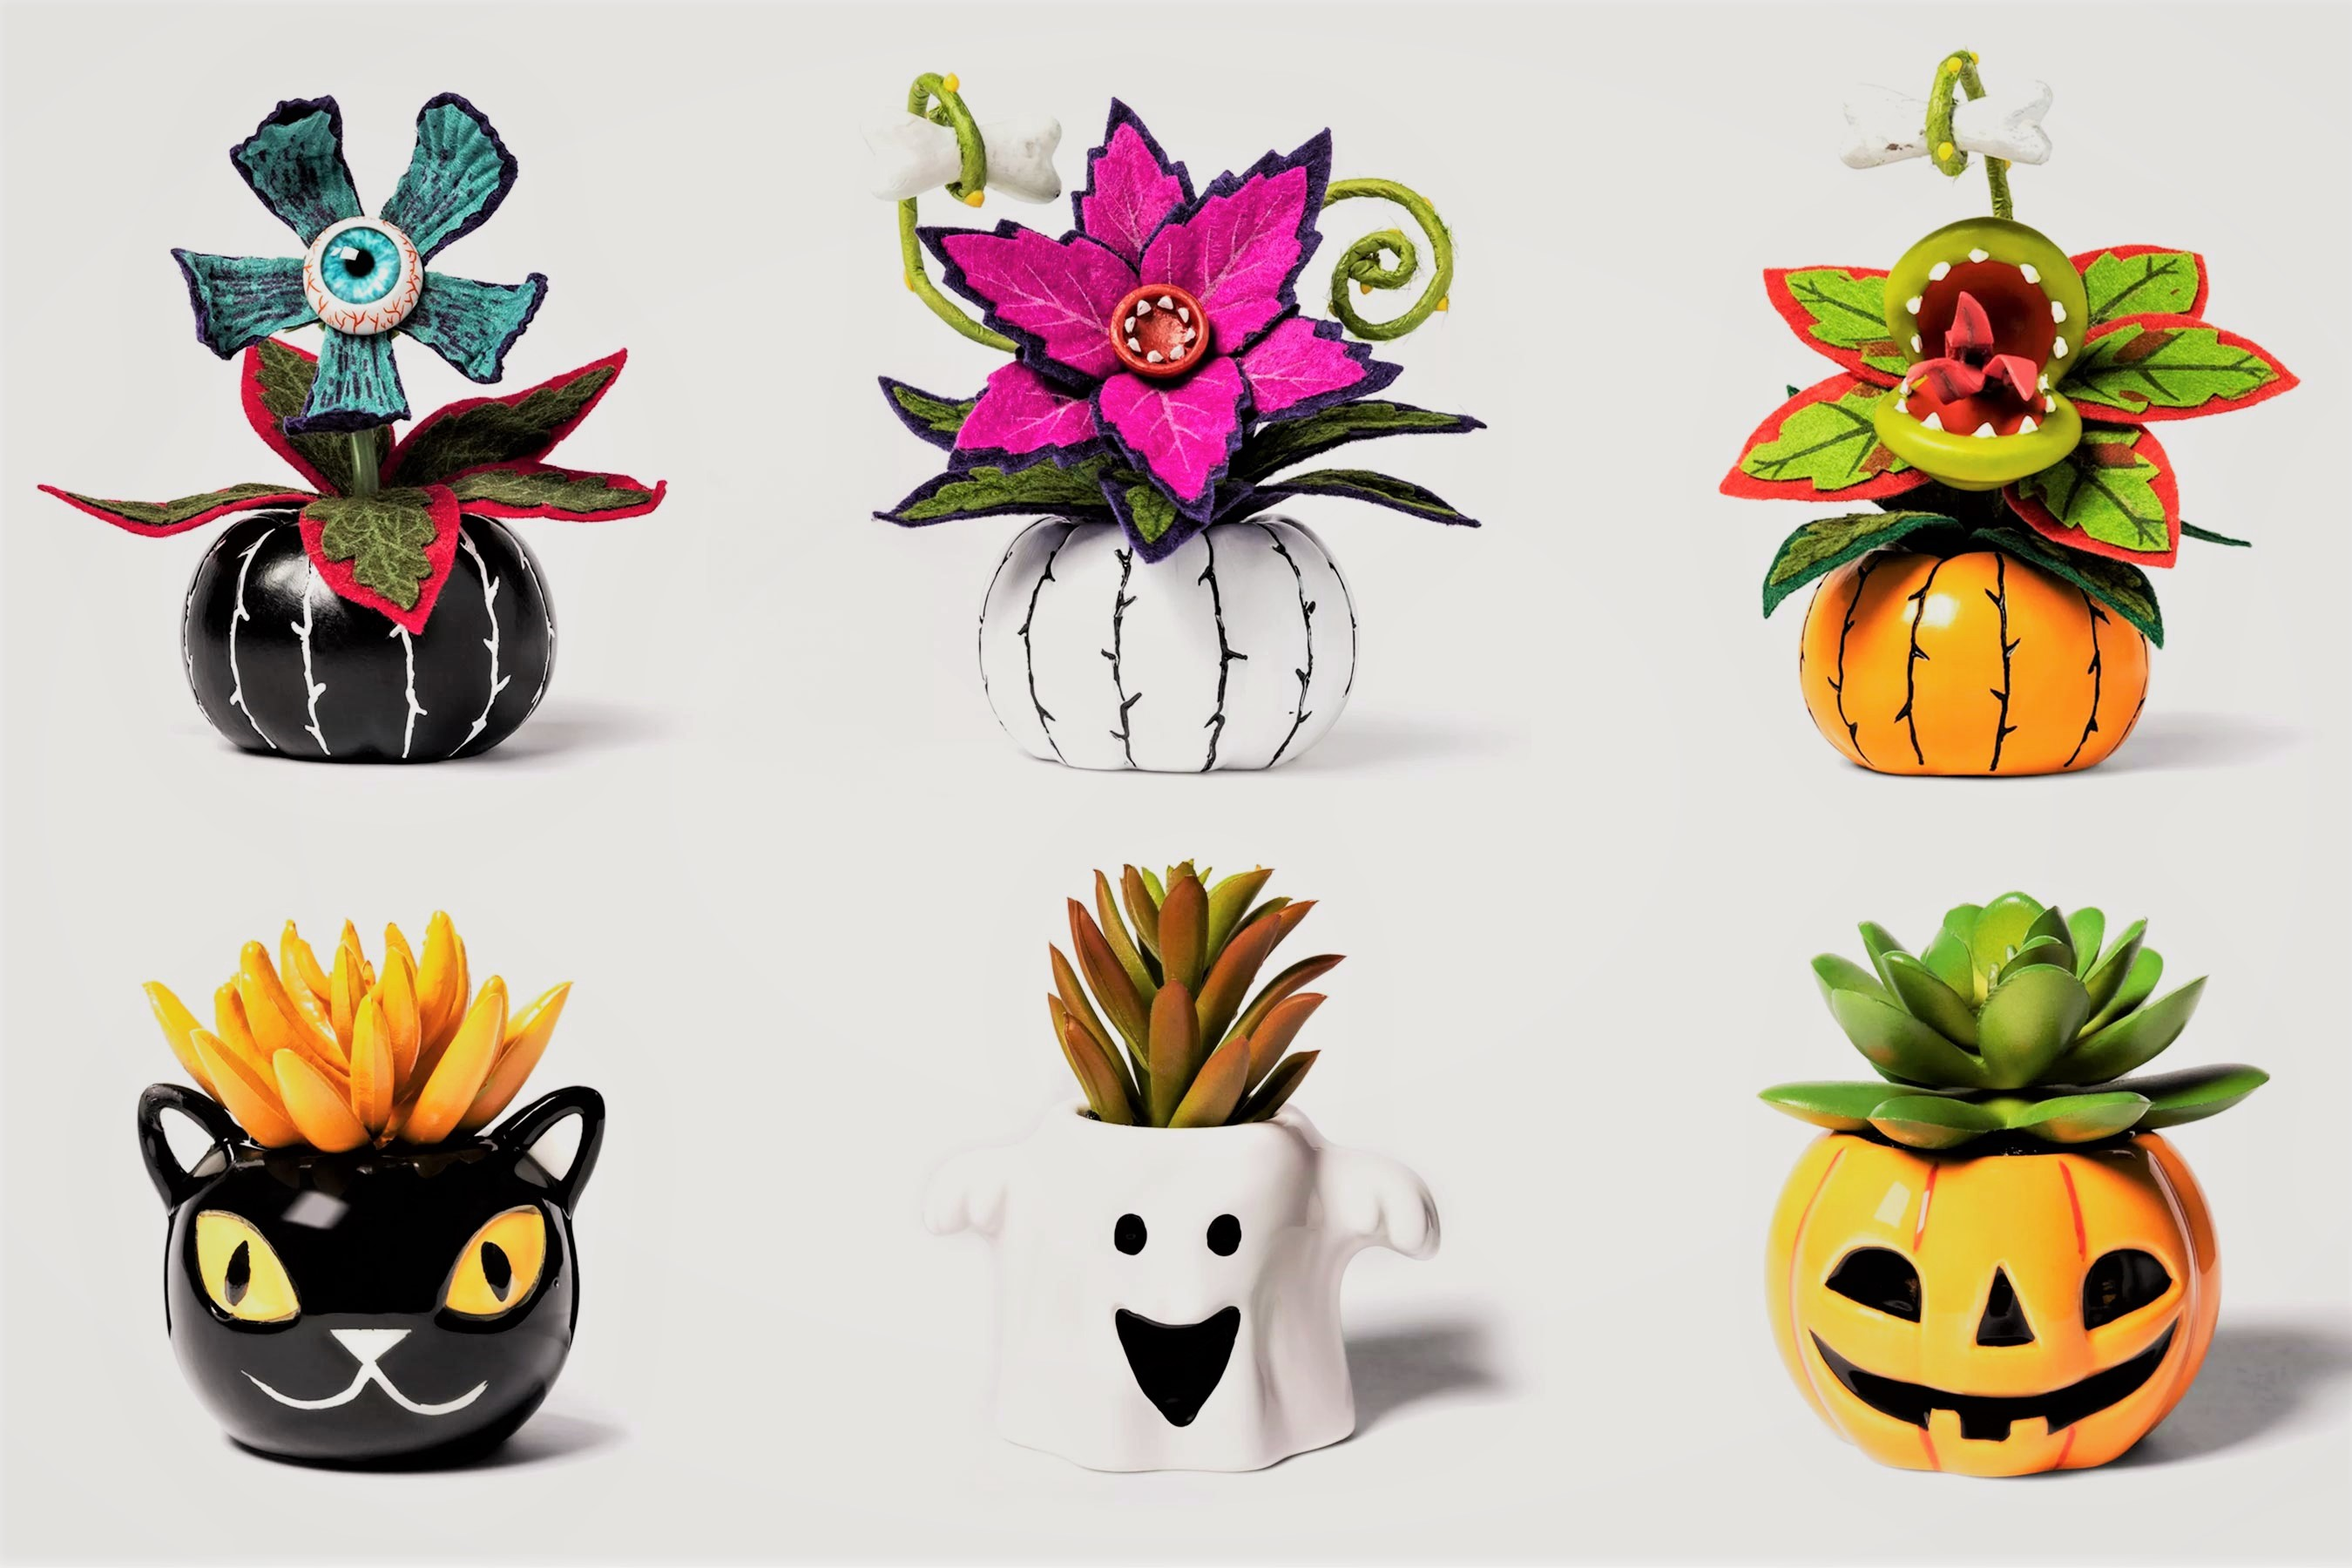 Target's New Line of Halloween-Inspired Succulents Is as Cute as It Is Creepy